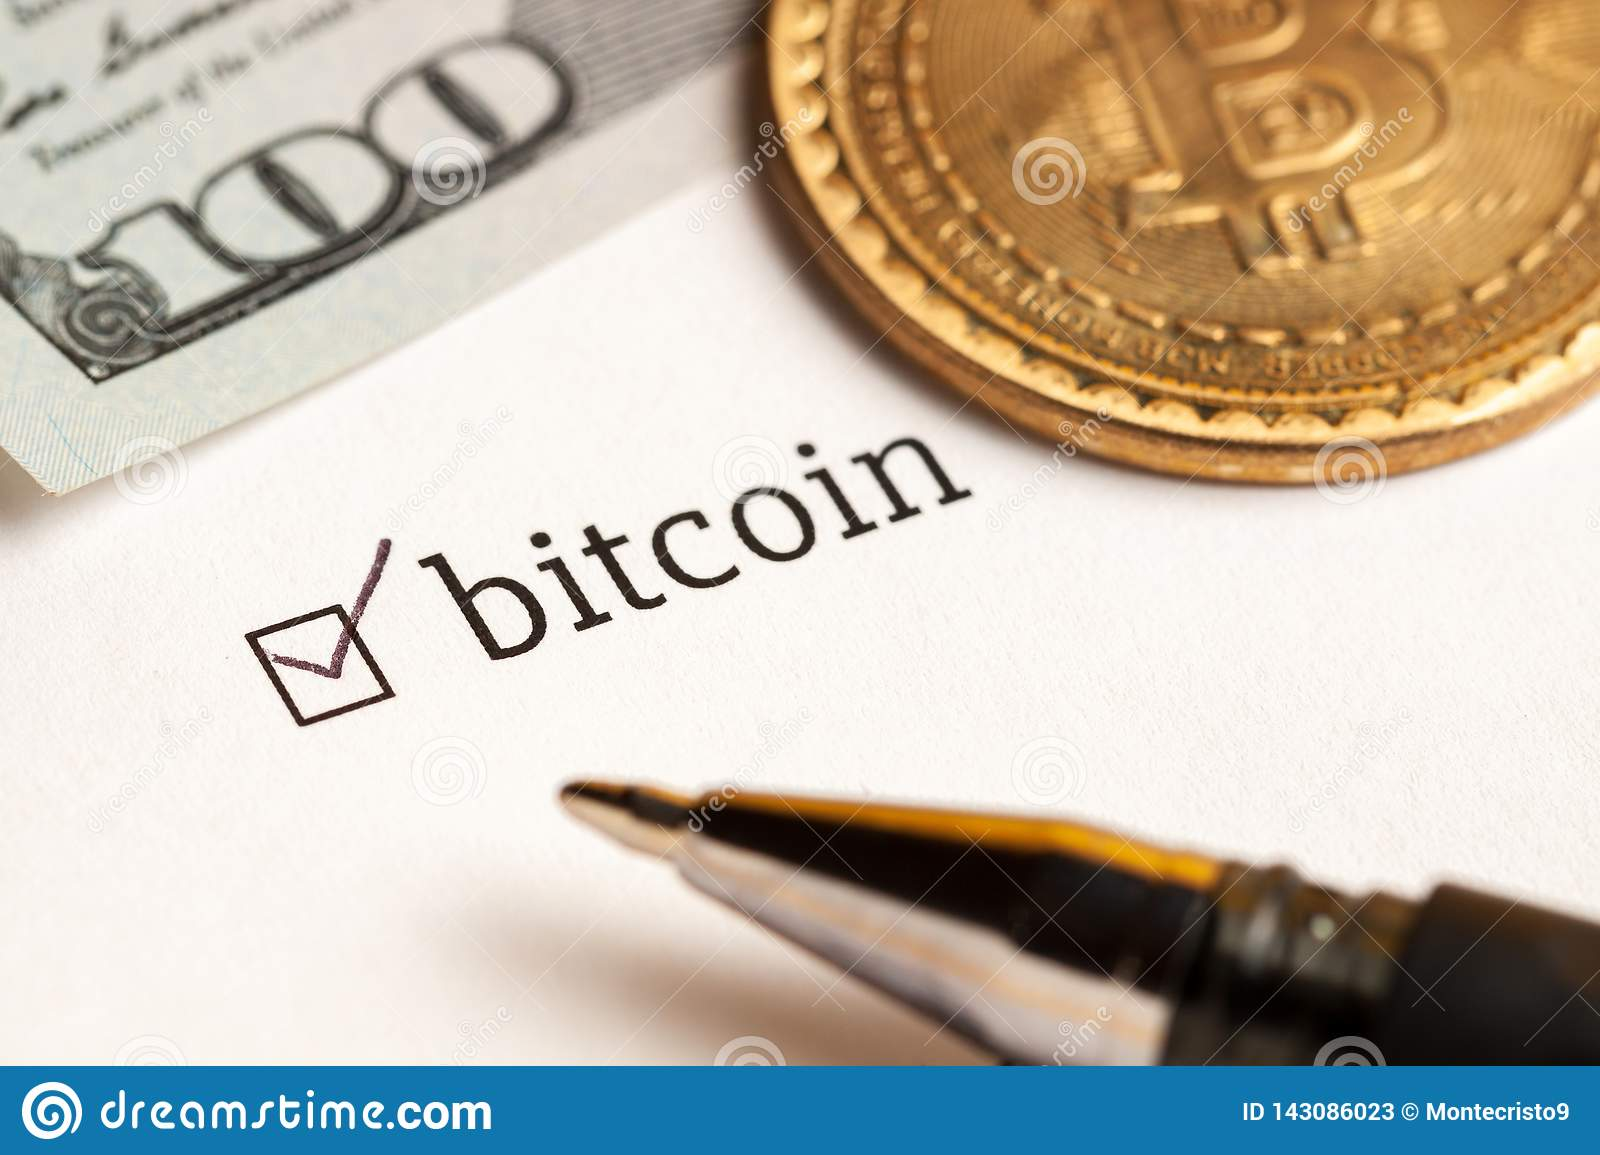 Checked checkbox with word bitcoin and dollars at background. questionnaire concept